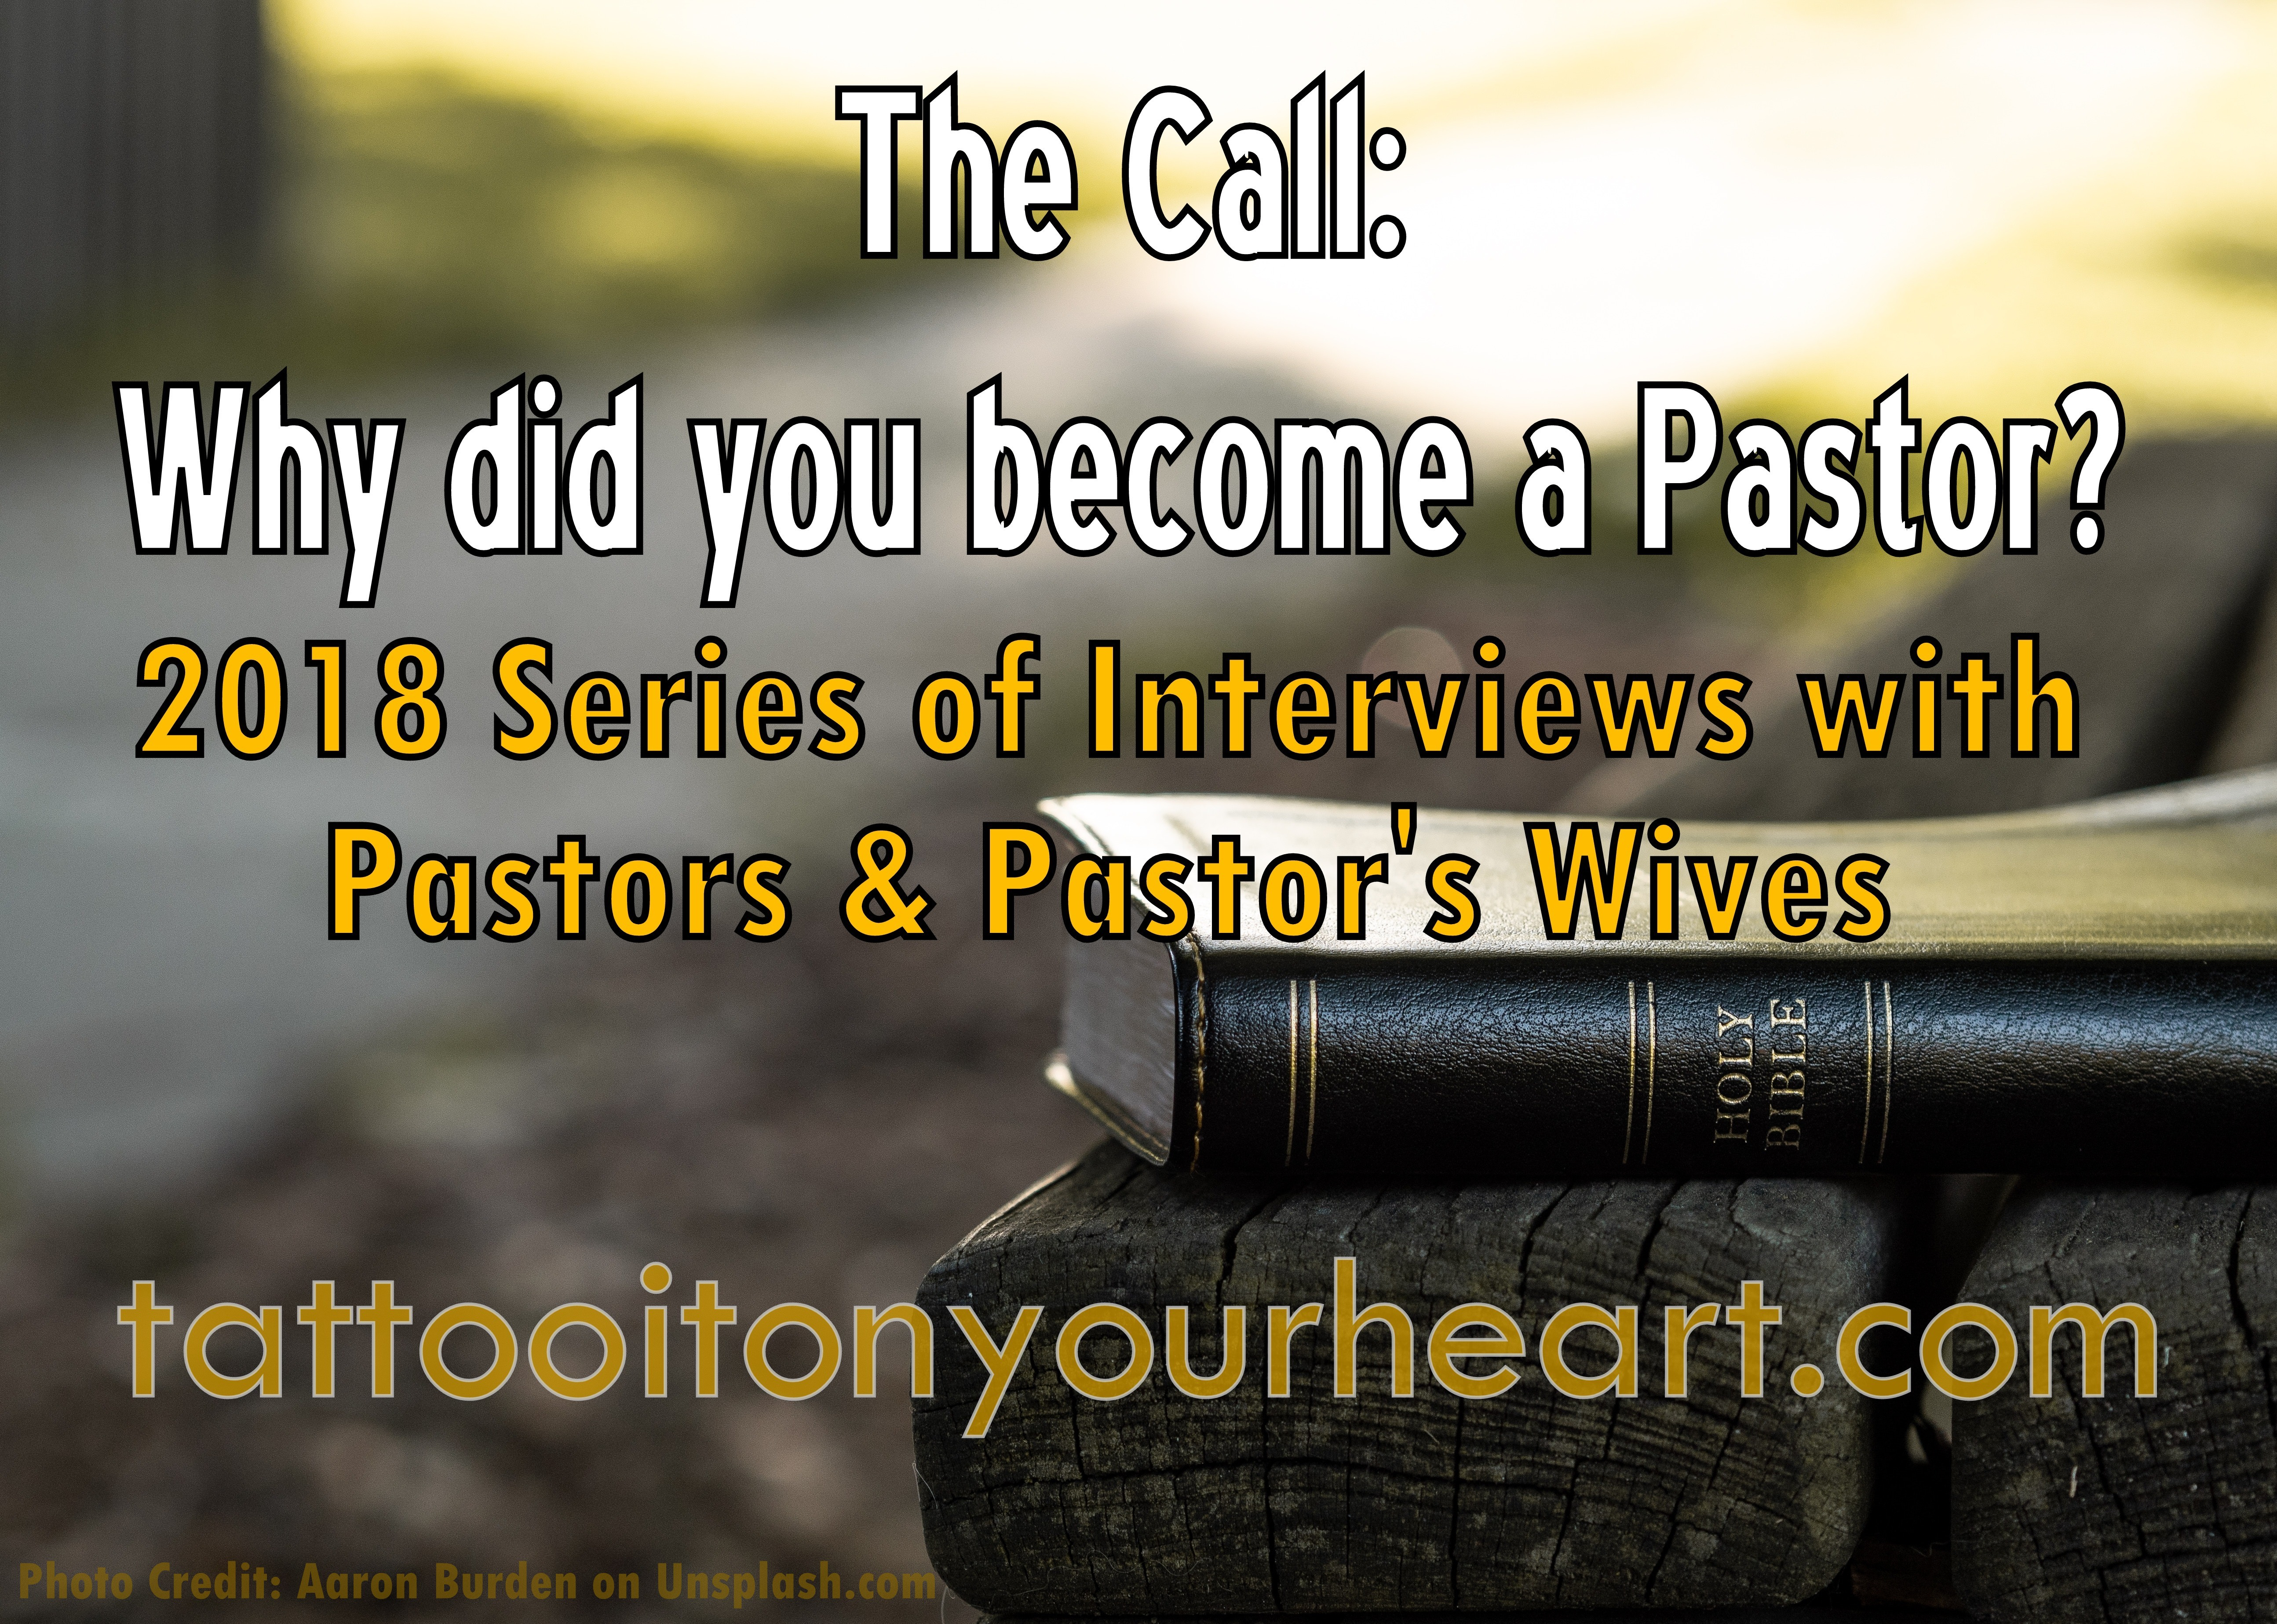 Rachael_M_Colby_Tattoo_It_On_Your_Heart_aaron-burden-unsplash-Why_Did_You_Become_a-Pastor